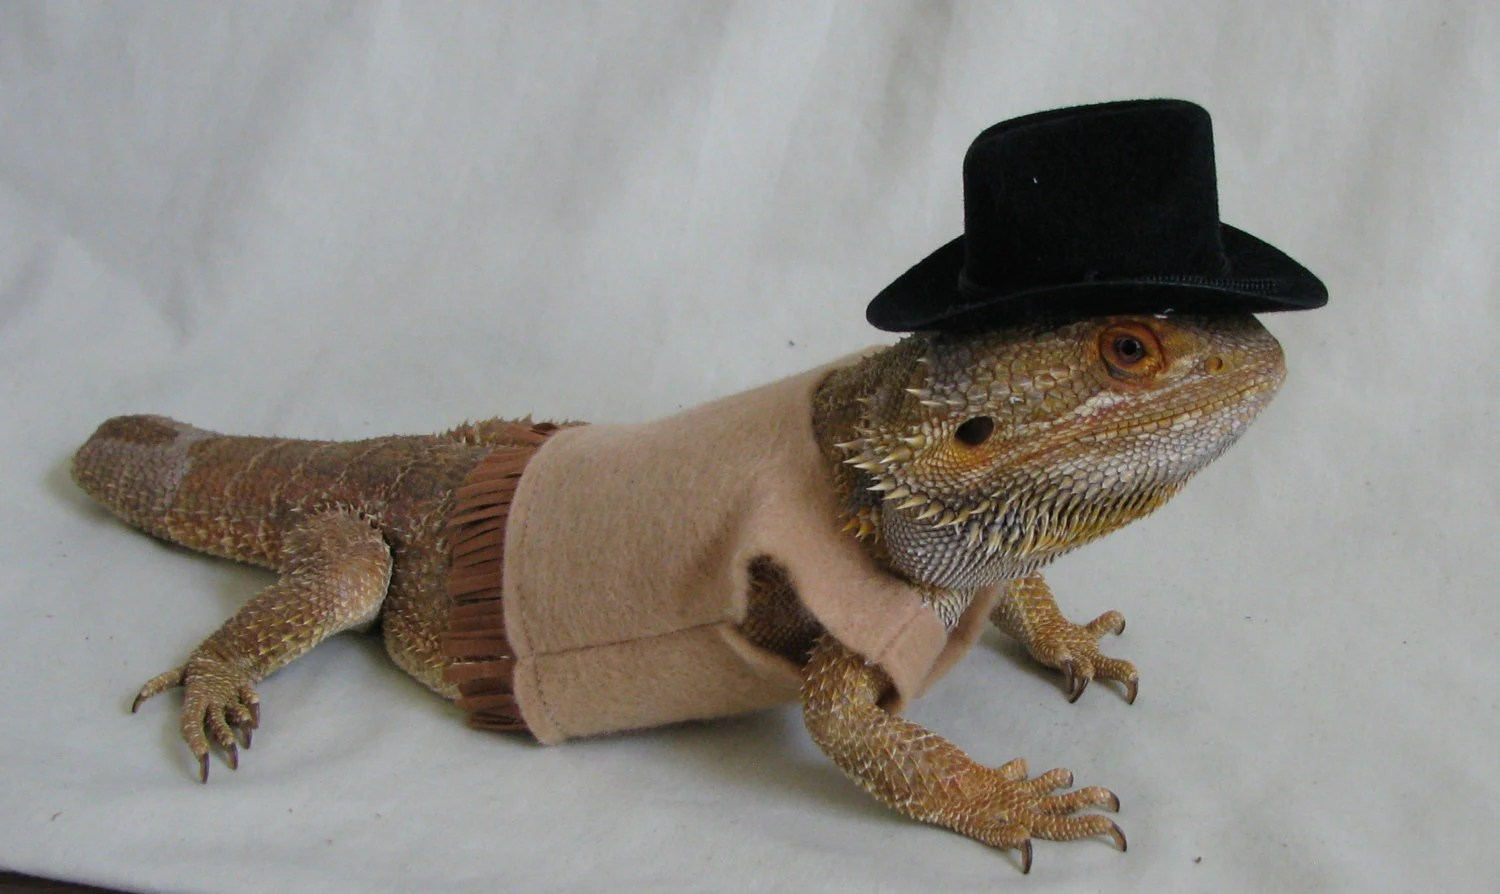 Cute Leopard Gecko Wallpaper Cowboy Sheriff Costume For Bearded Dragons Two Sizes